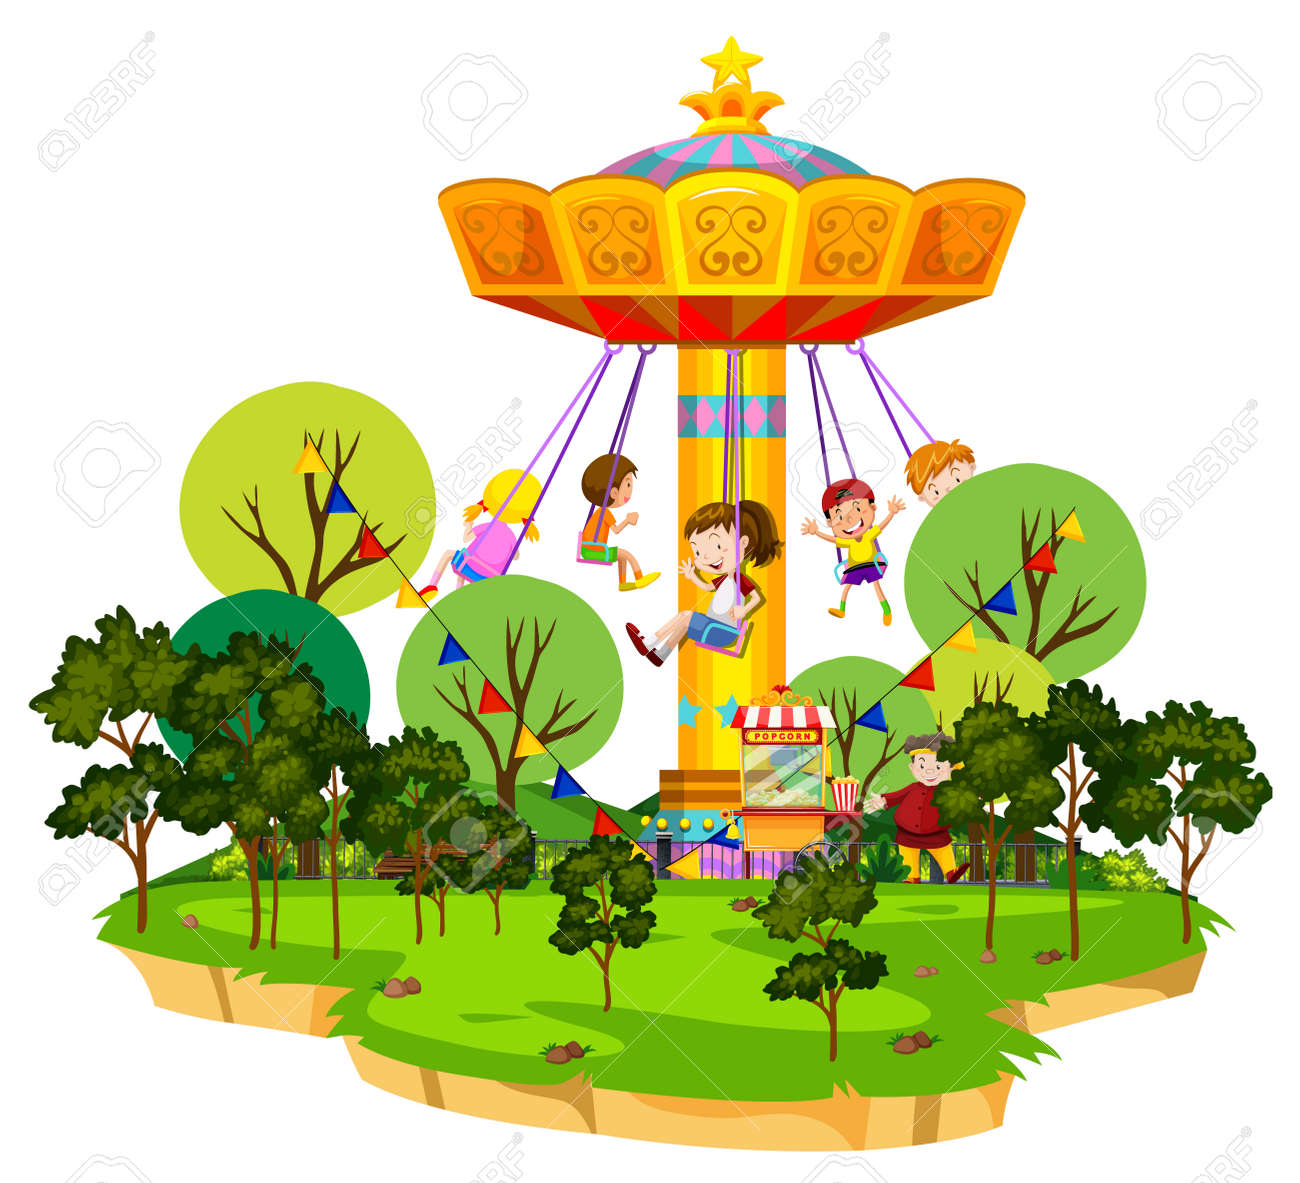 Scene with many kids riding on giant swing in the park illustration - 145994930